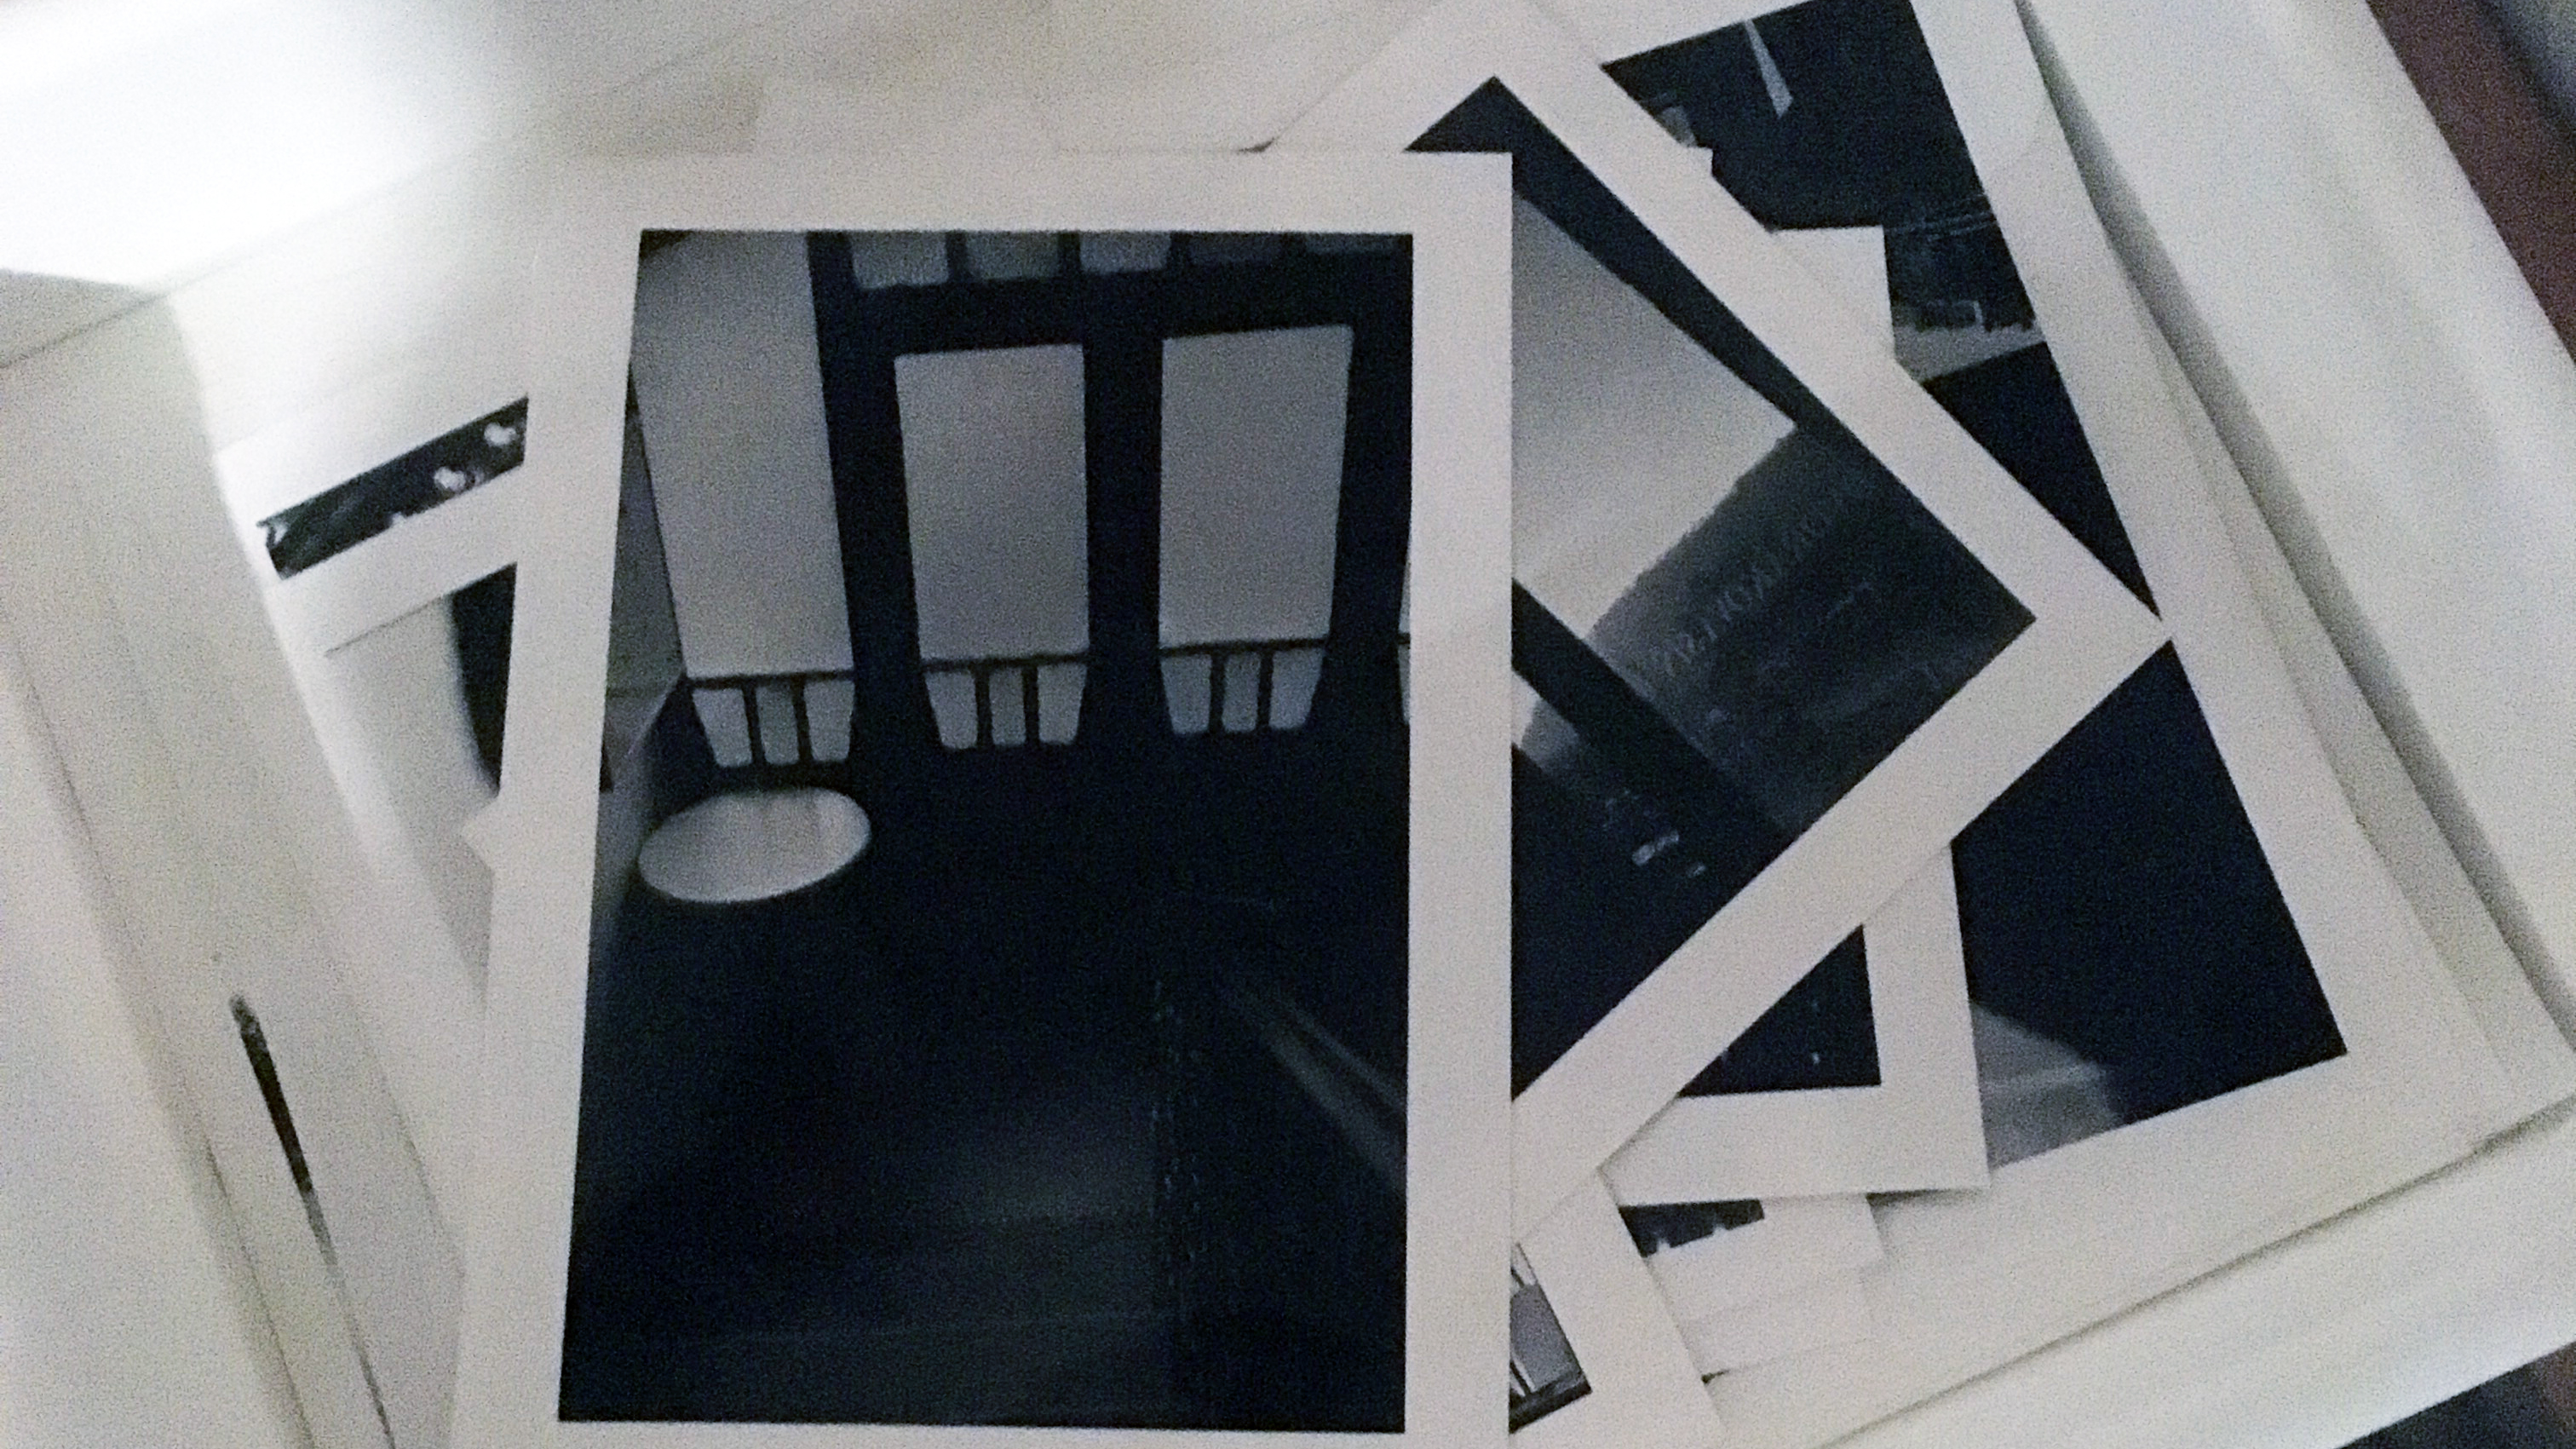 test prints during a darkroom session